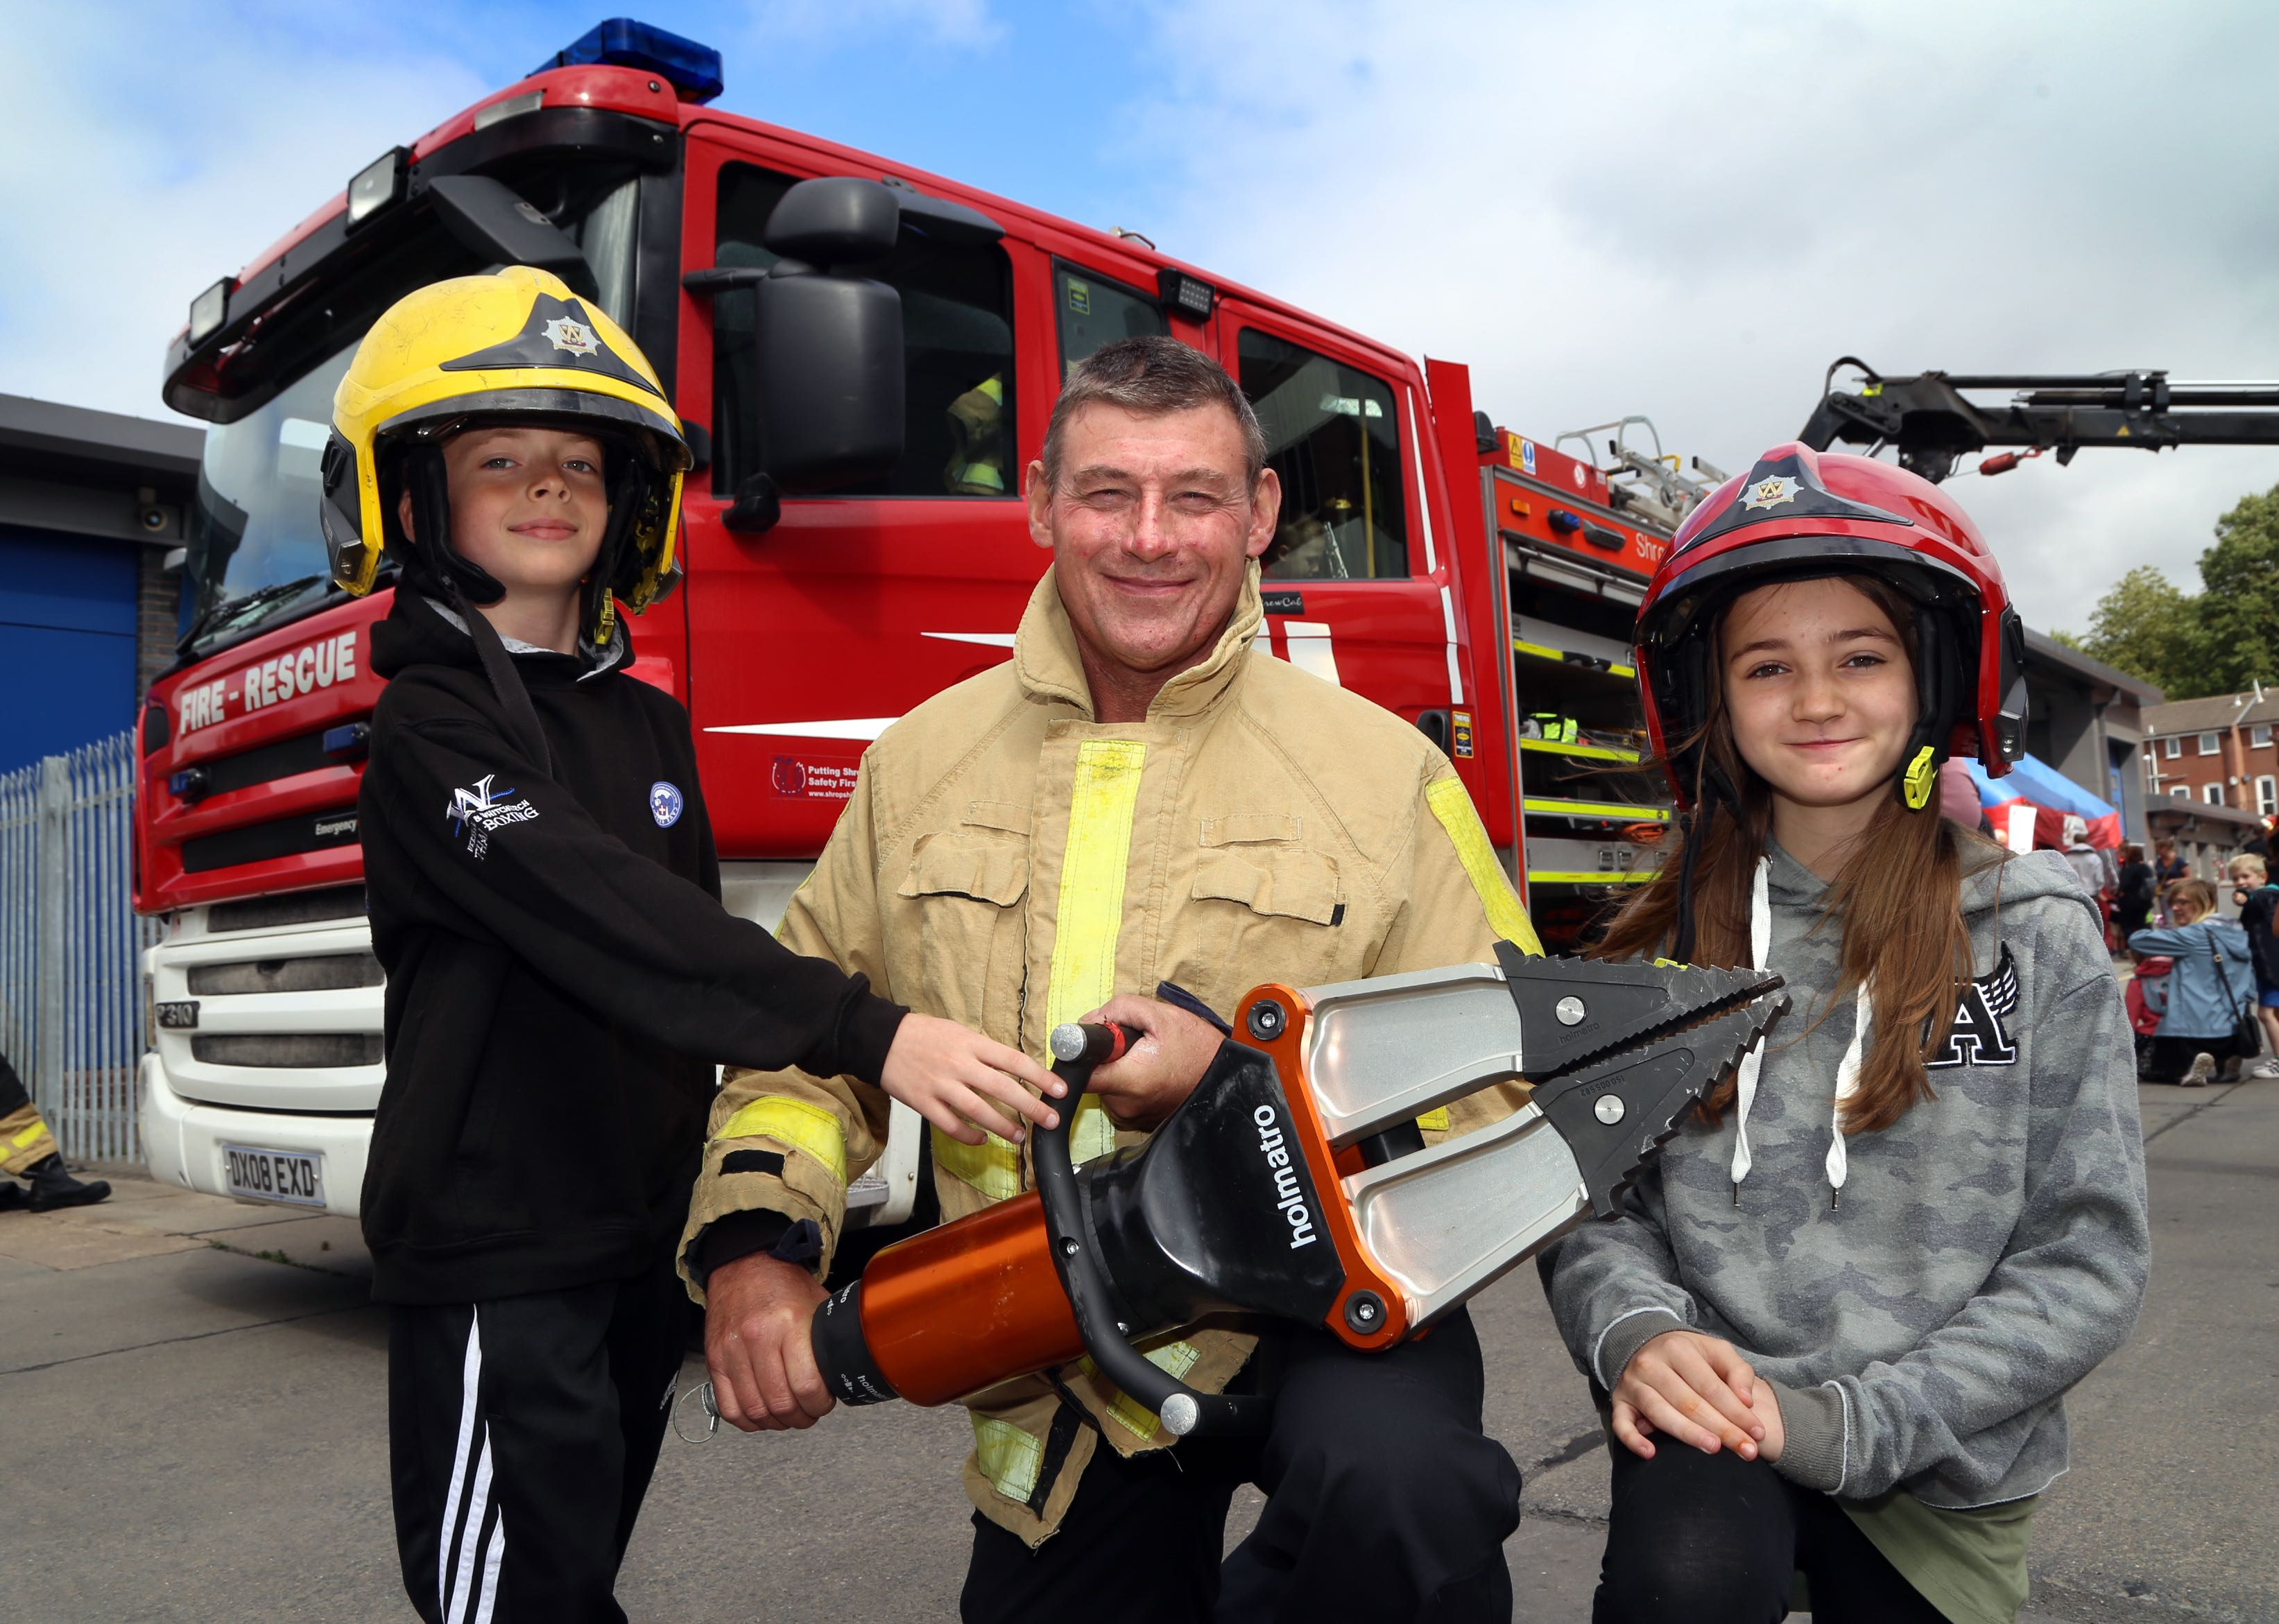 Firefighter Chris Davey shows Joe Sheridan (9) and Tabitha Bridgman (12) the special cutters used to rescue people from road traffic collisions.